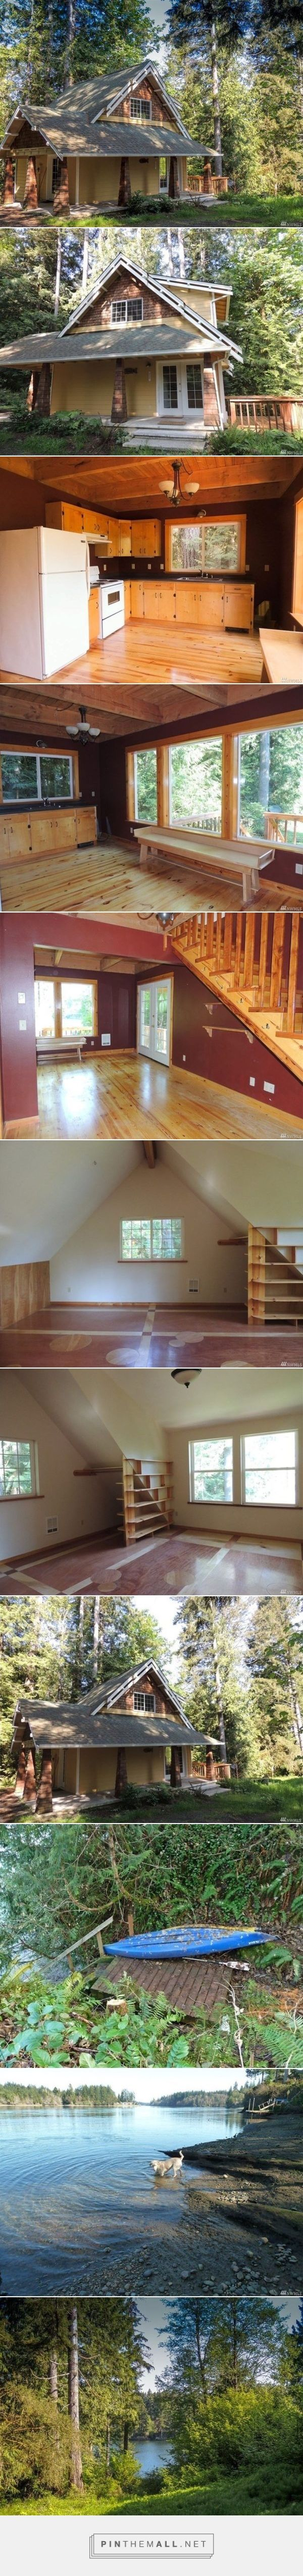 a grouped images picture - Pin Them All.  351 SE Channel Point Rd, Shelton, WA 98584 1 bed 1 bath 655 sqft For Sale $240,000 Zestimate®: $244,520 Est. Mortgage $916/mo This special retreat has a covered front porch, 65 ft of waterfront on the Hammersley Inlet, and has one bedroom and one bath. Watch the eagles, whales and boats from your private deck or drop your kayak in the Sound for a day of exploring.